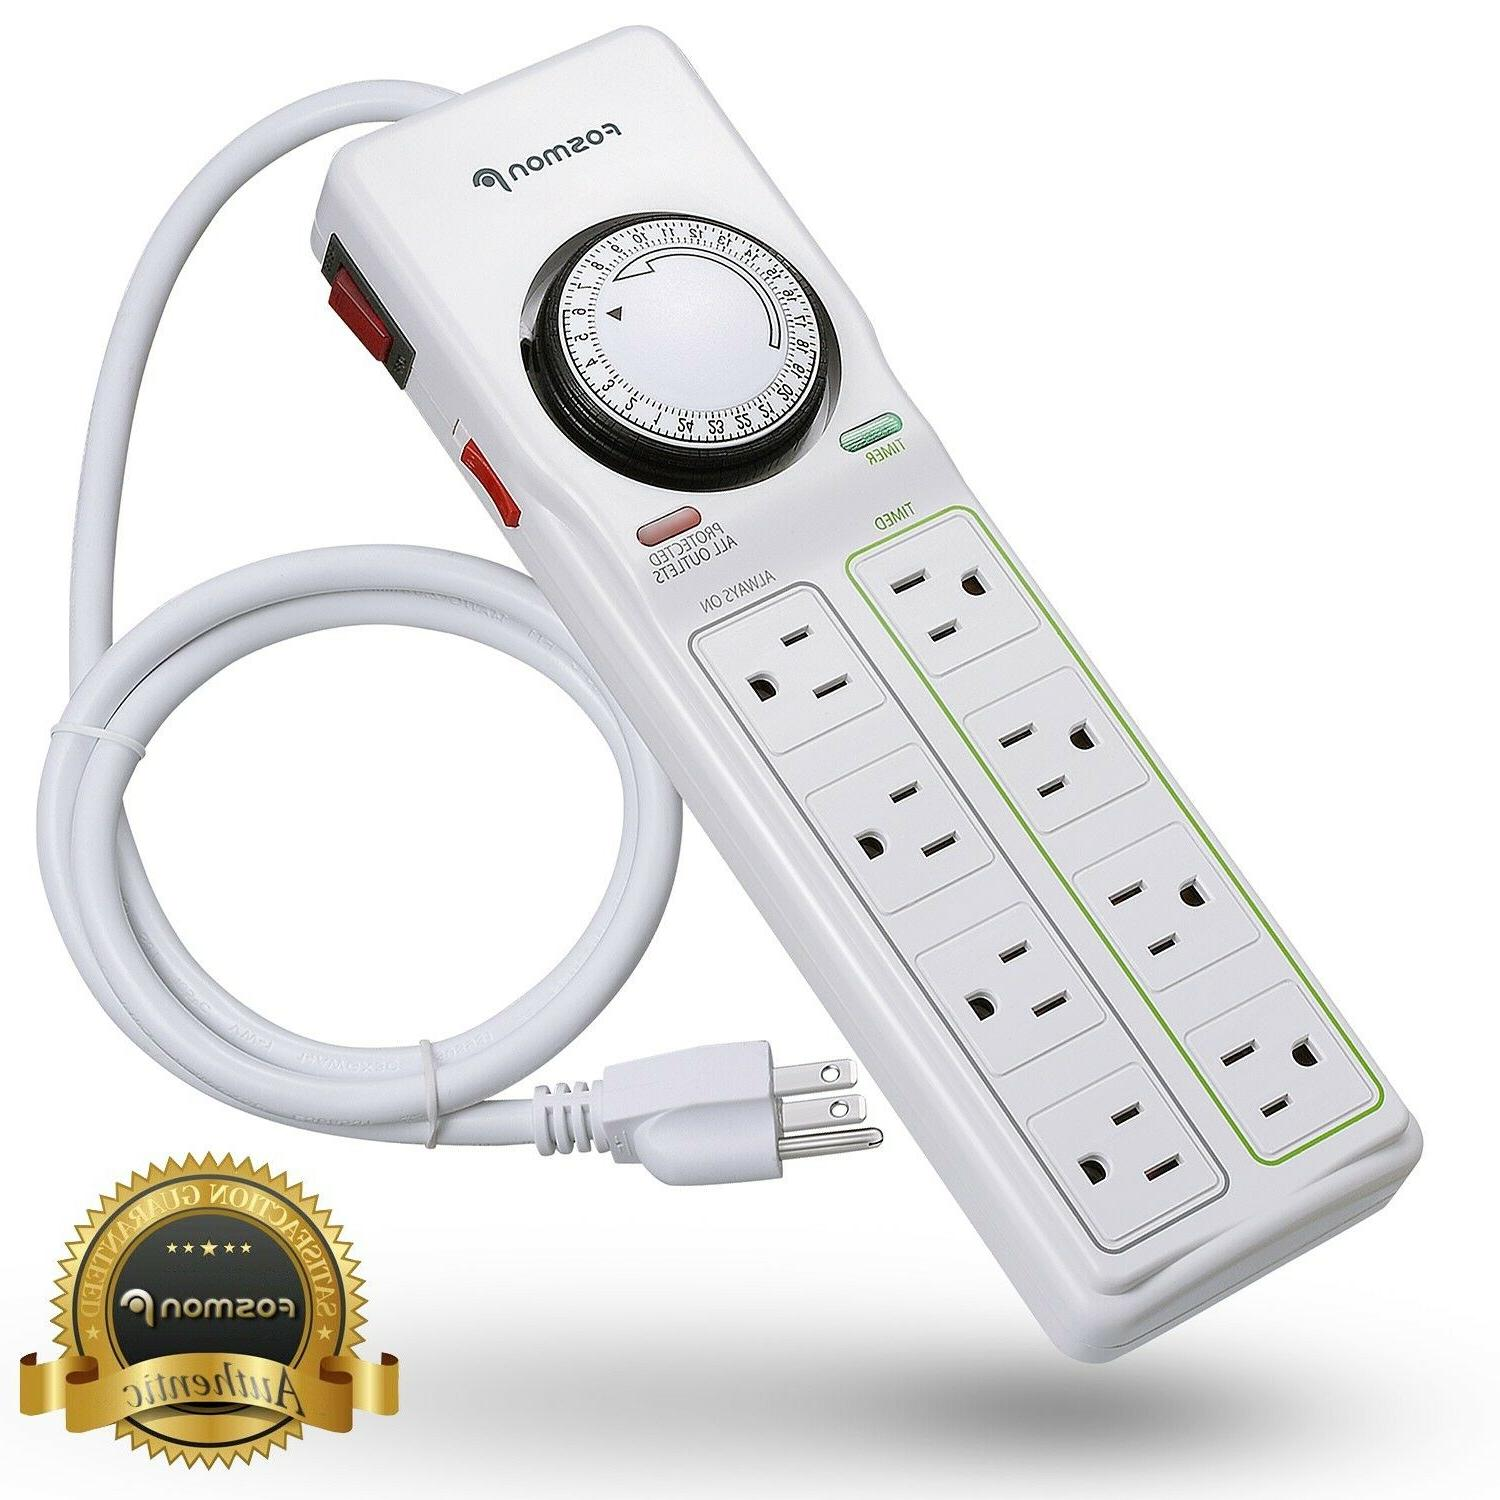 8 outlet power strip 24hr programmable timer